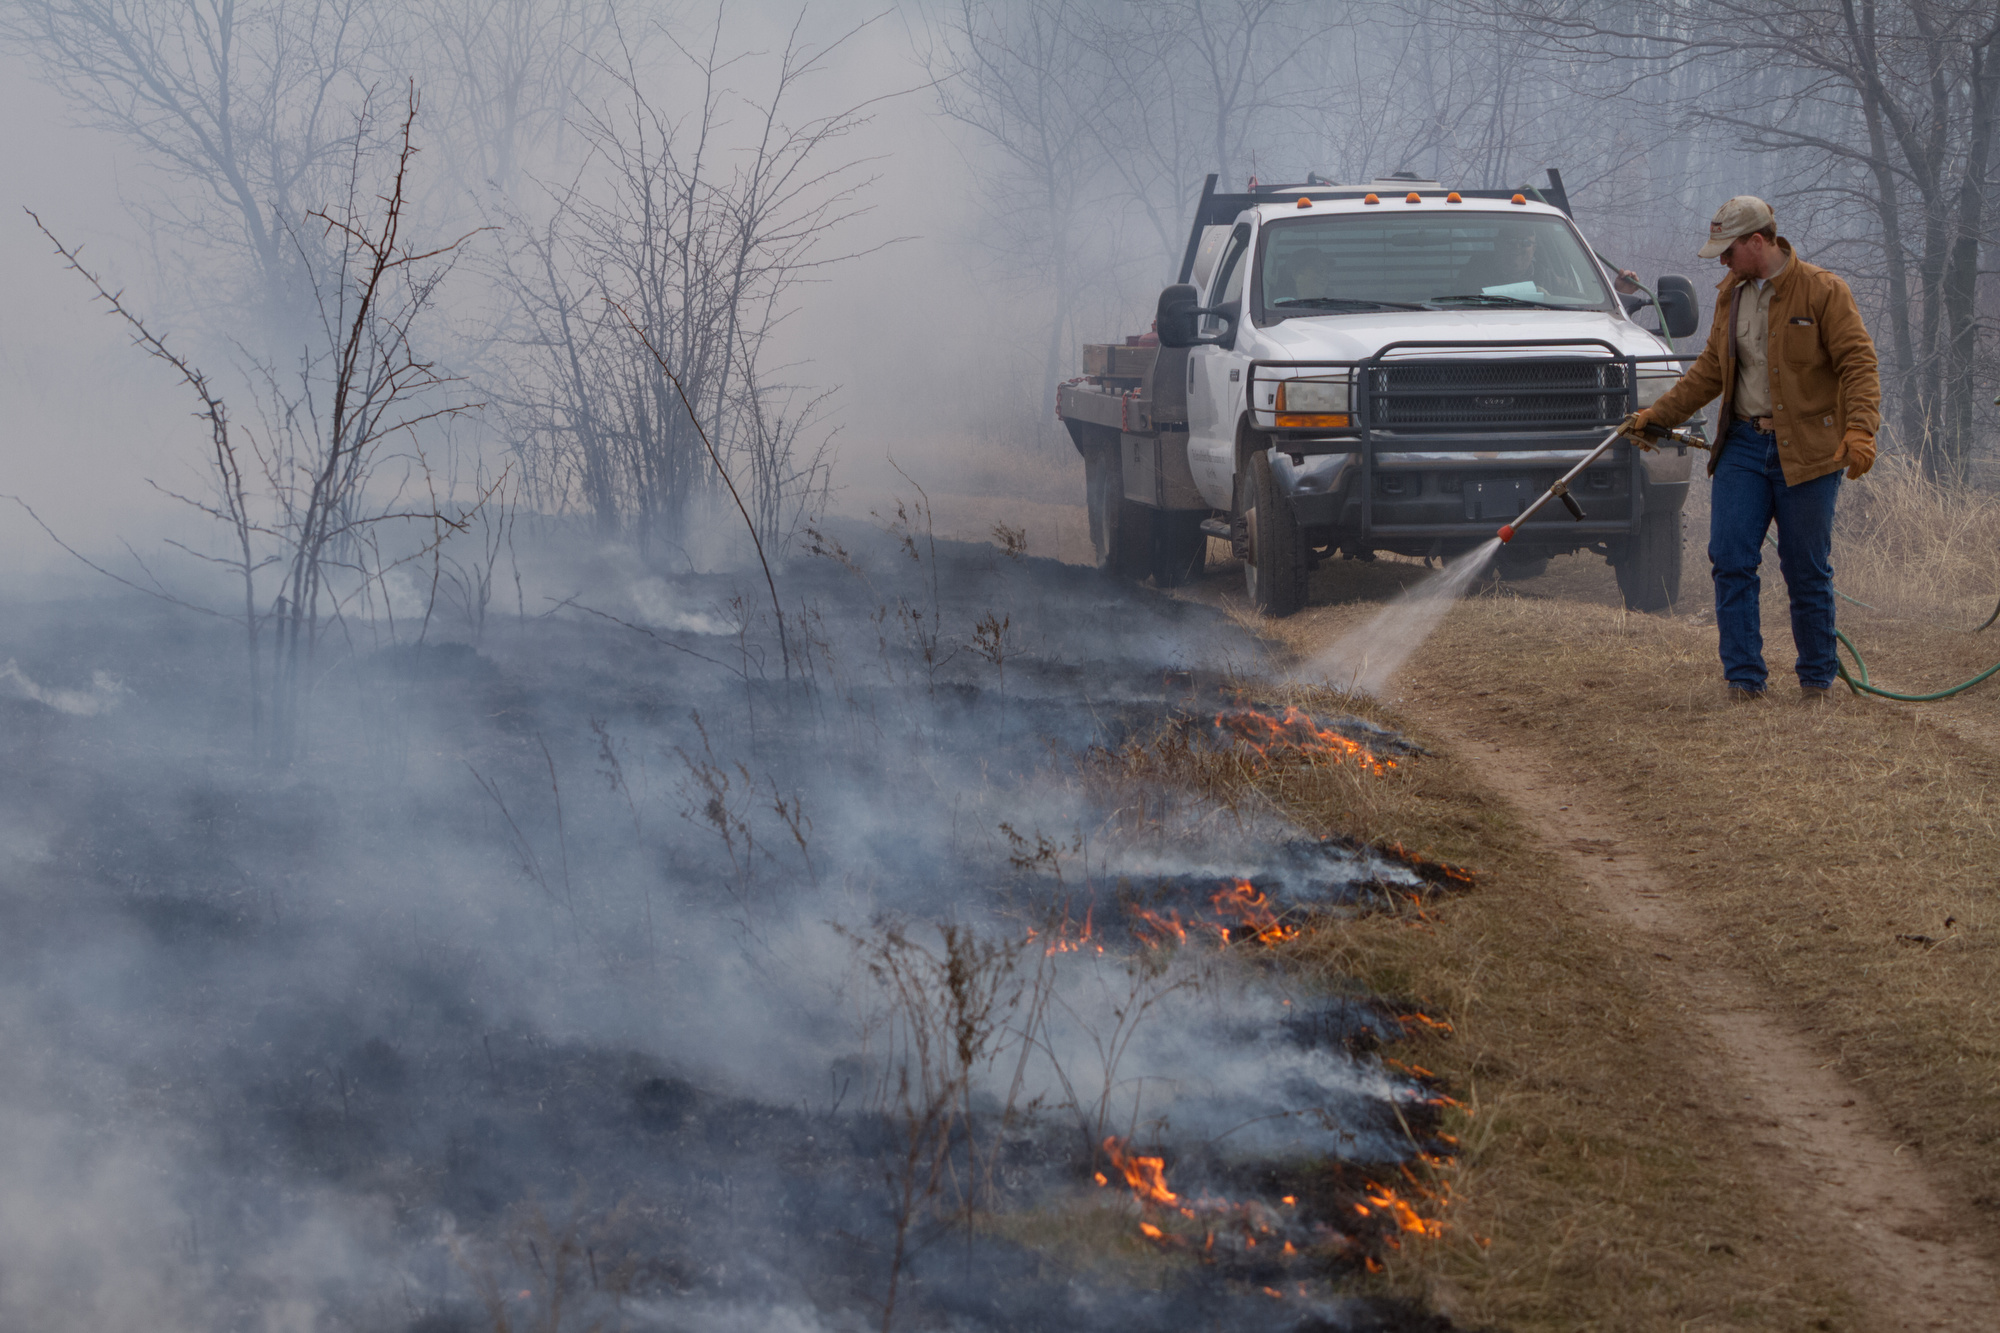 Ag Consultant spraying water at a controlled burn site.